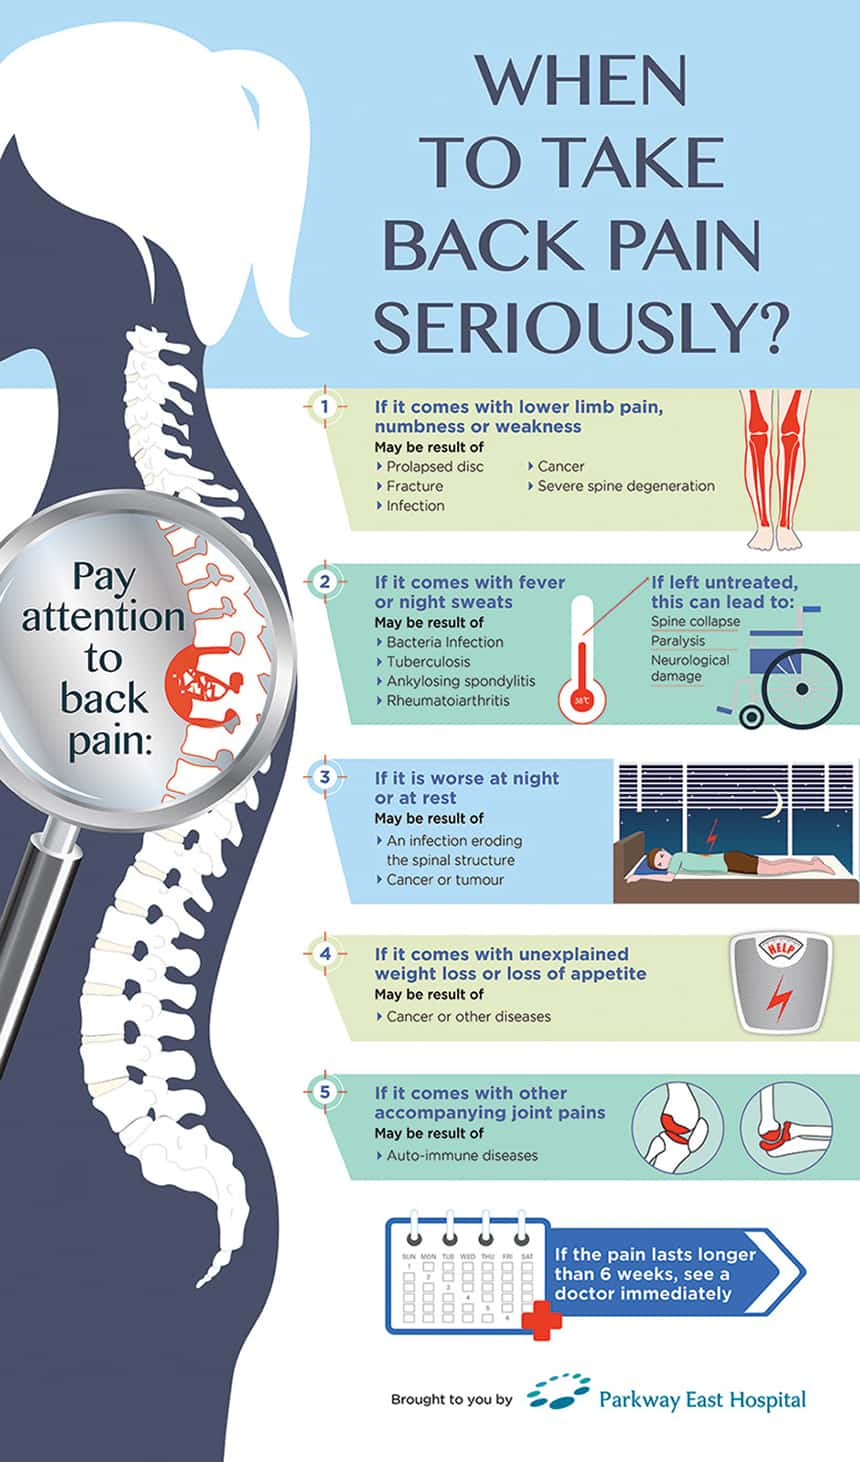 When Should I Take Back Pain Seriously Health Plus